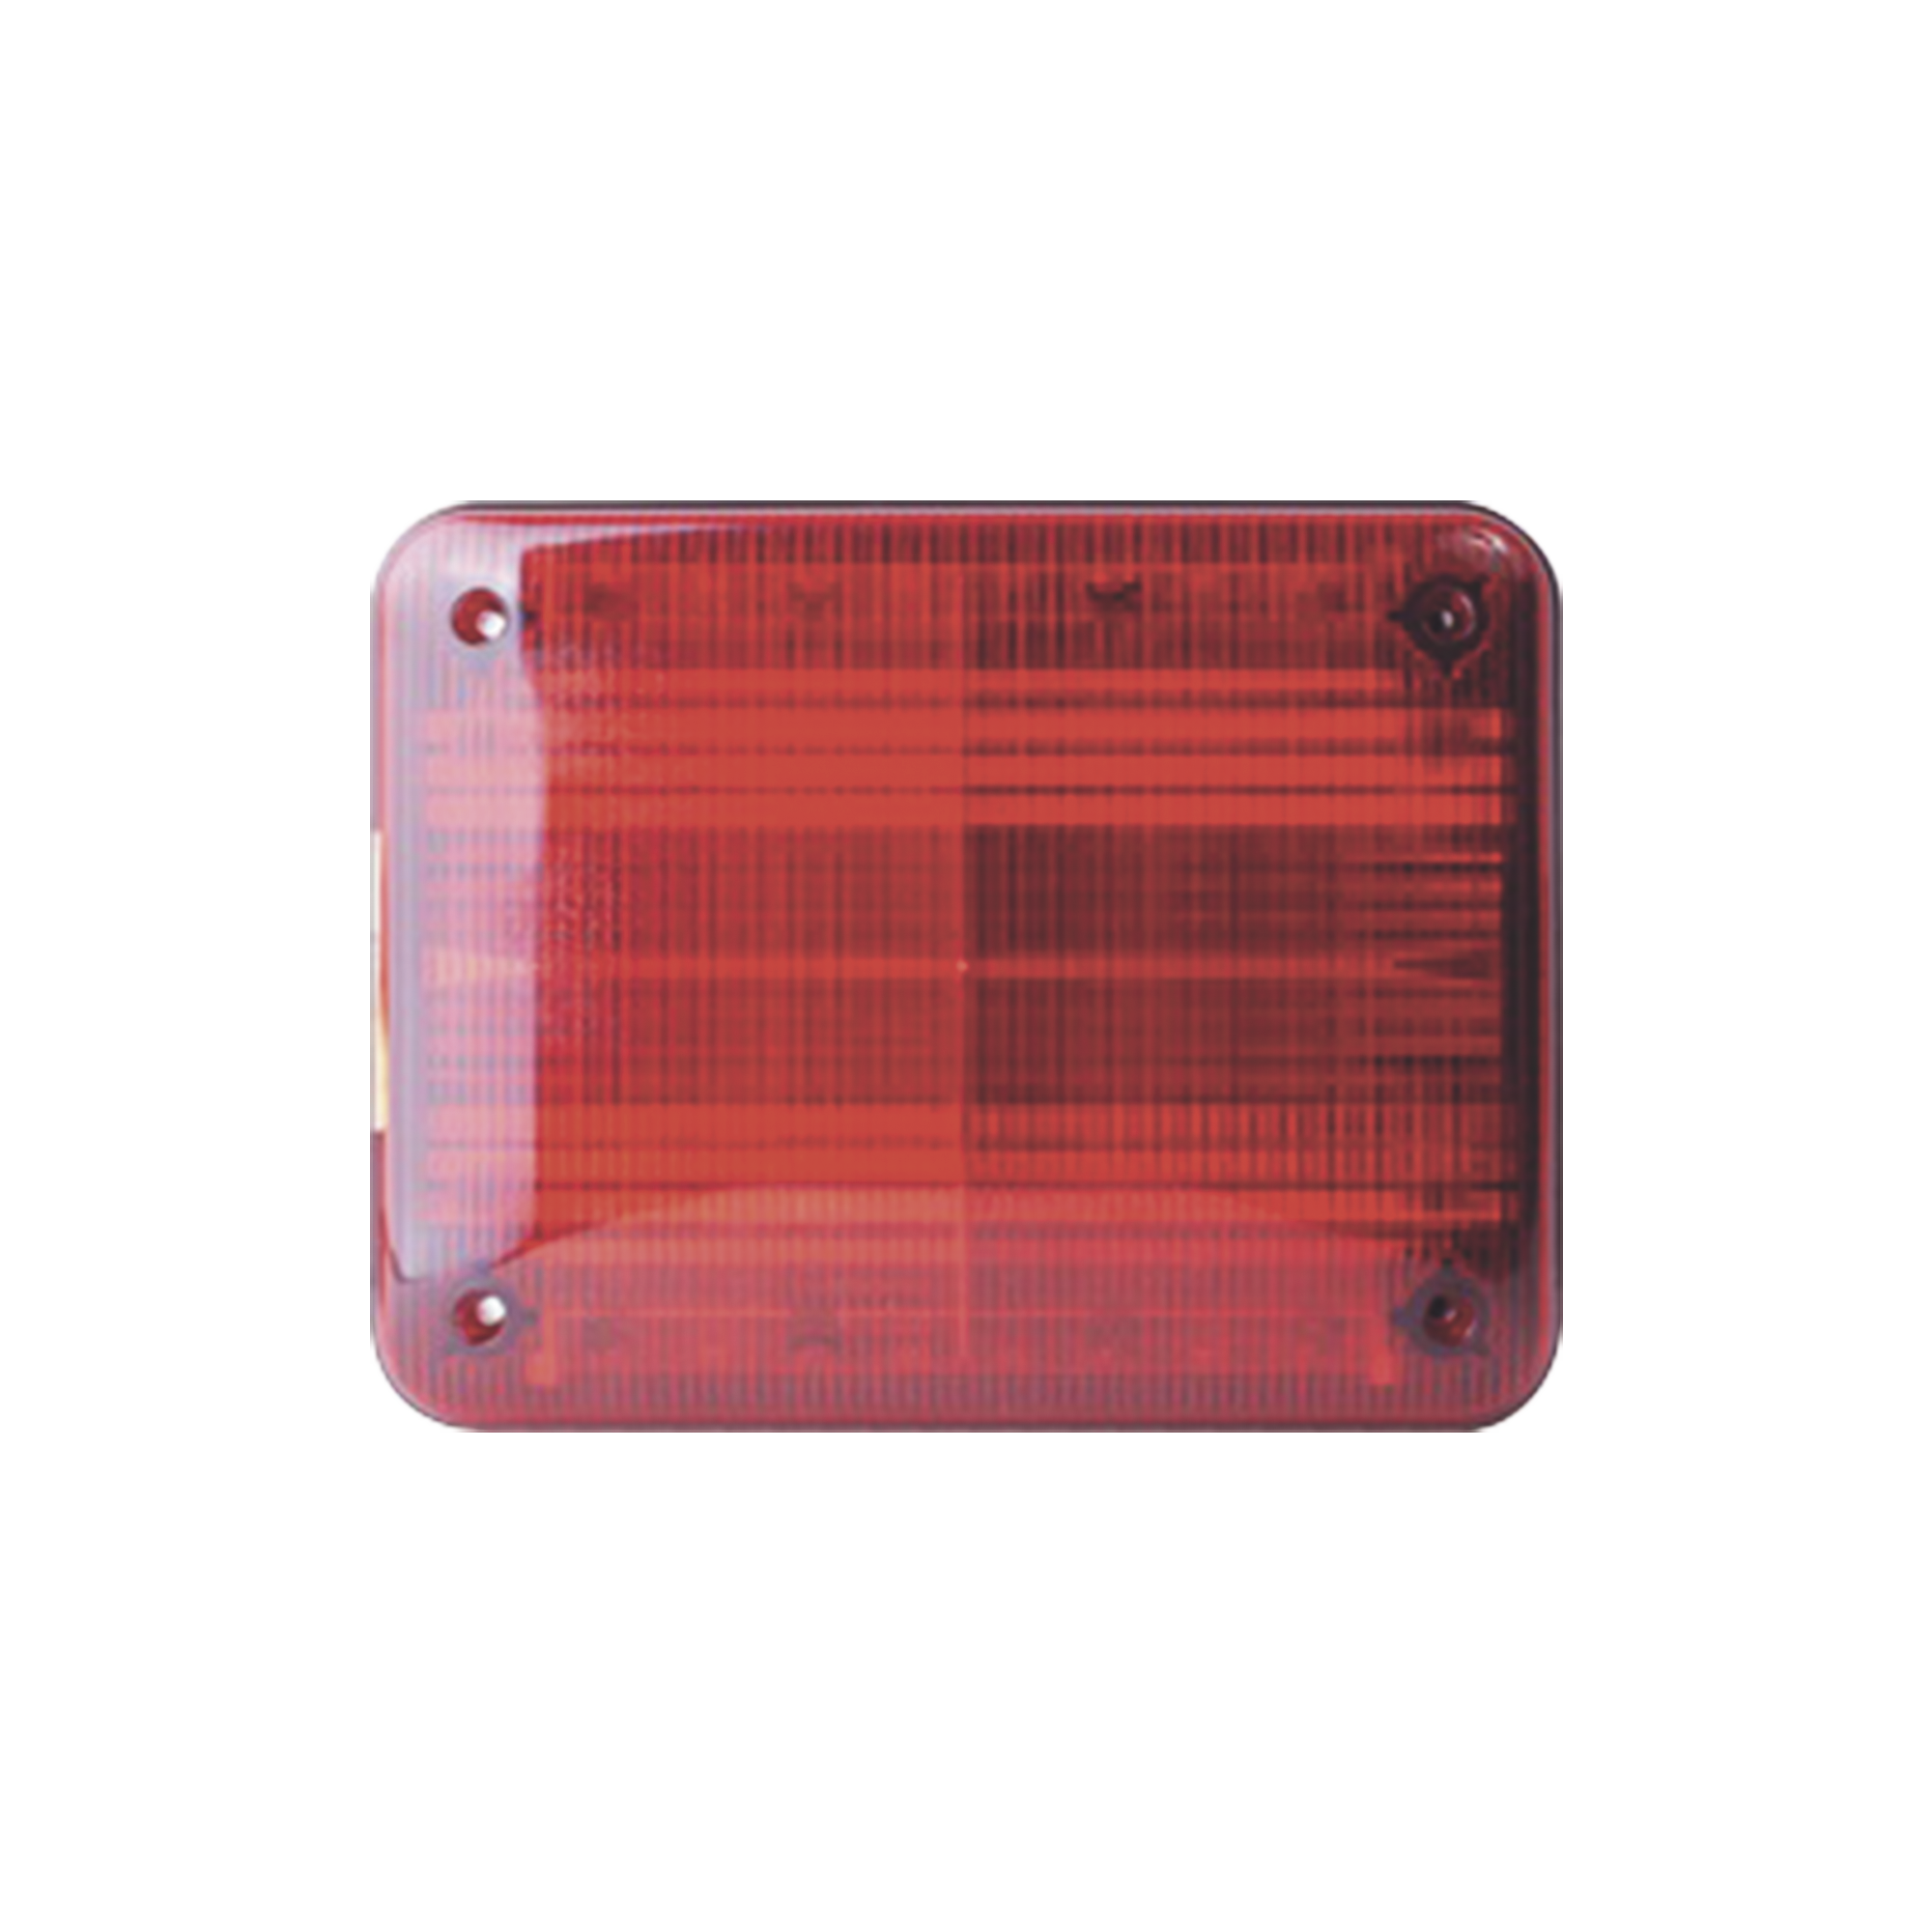 Luz de advertencia Quadraflare LED, Flasher Integrado y Mica de color Rojo